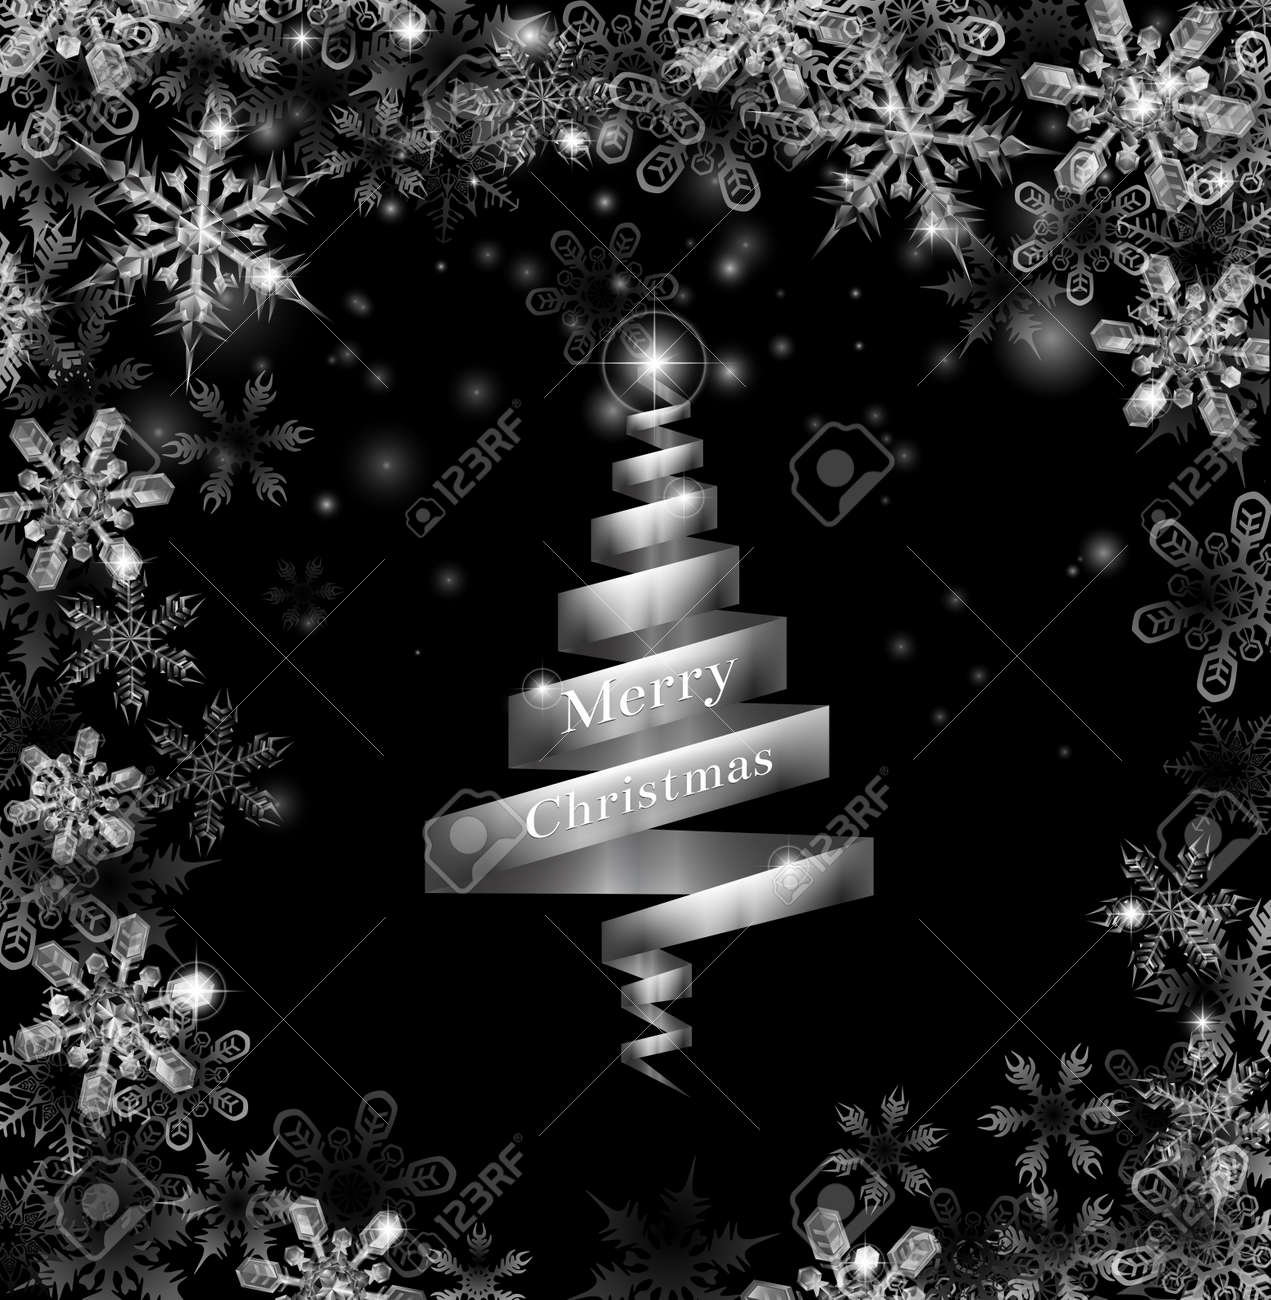 Abstract silver ribbon Christmas tree illustration with beautiful snowflakes in a border round the frame Stock Vector - 16333429